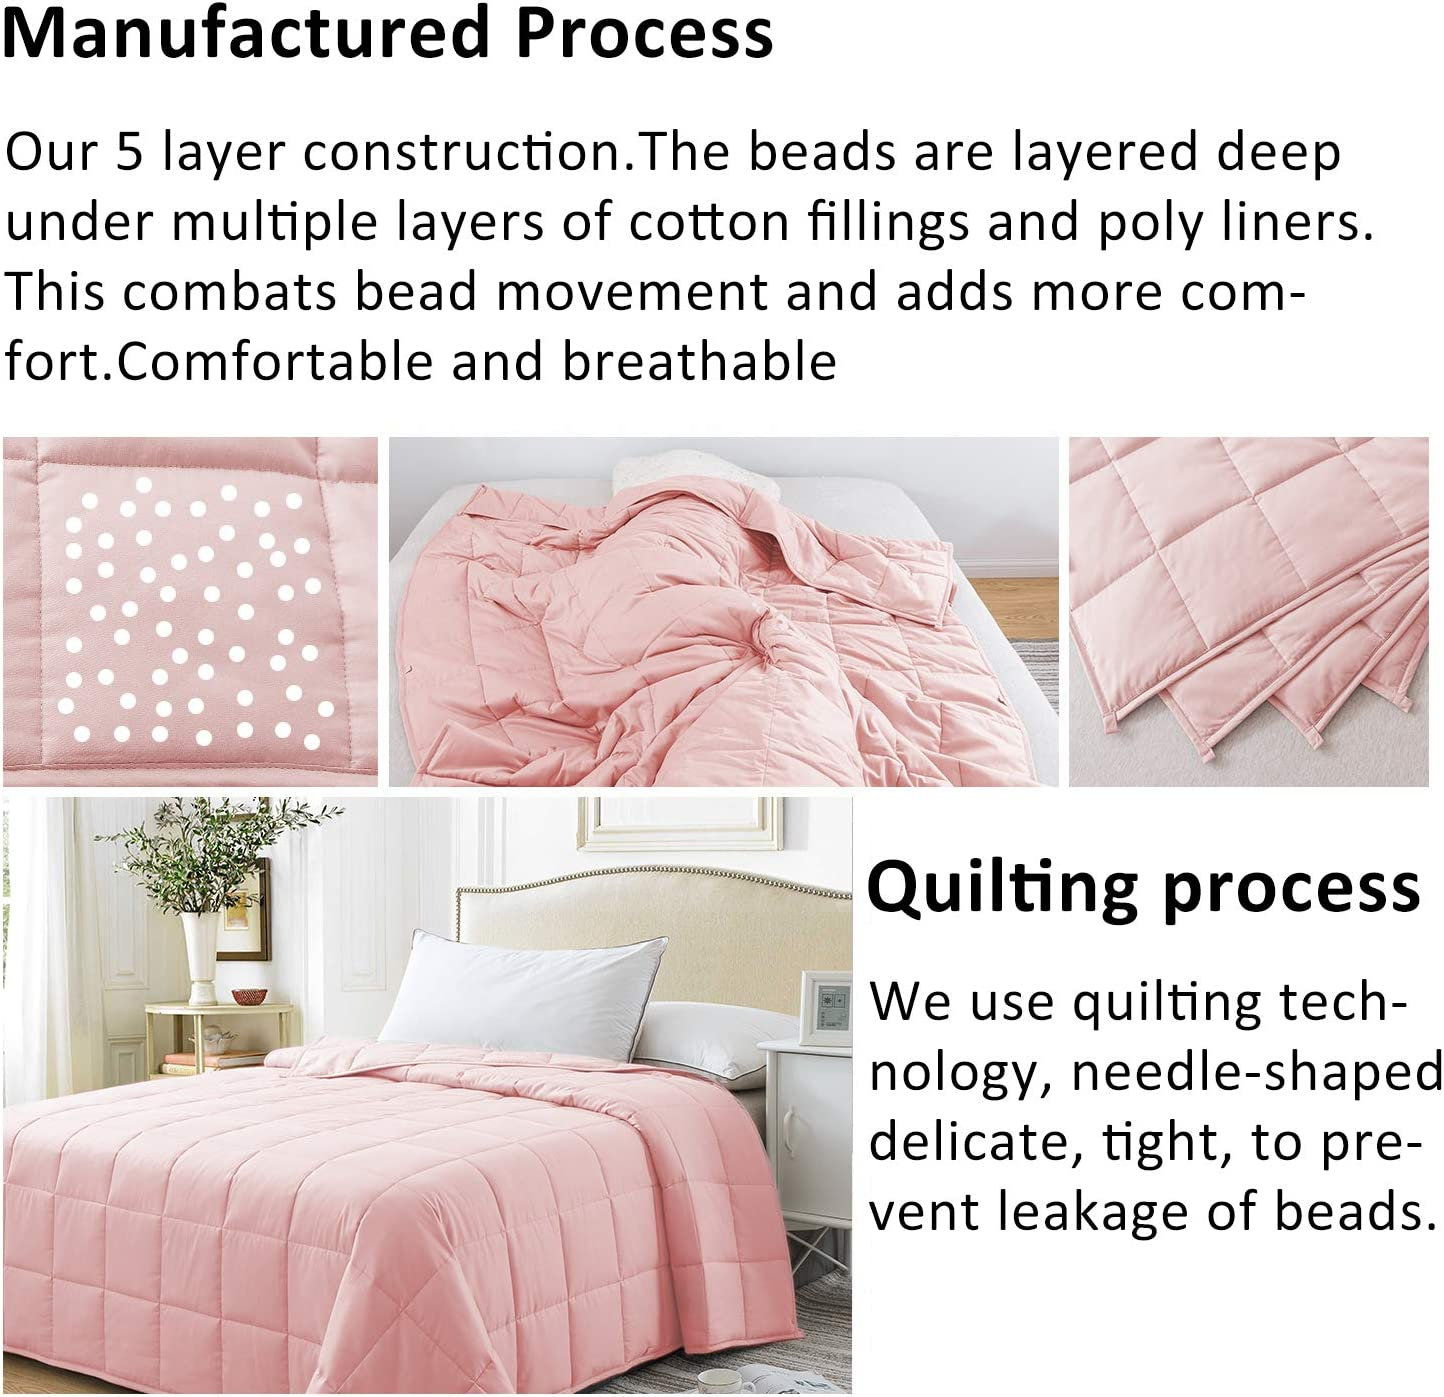 Best Adult Heavy Calming Blanket High Degrees of Breathability Cosymax Weighted Blanket 3.0,100/% Soft Sensory Cotton,High Density Glass Beads Filling Shell Pink, 48 x72 15lbs